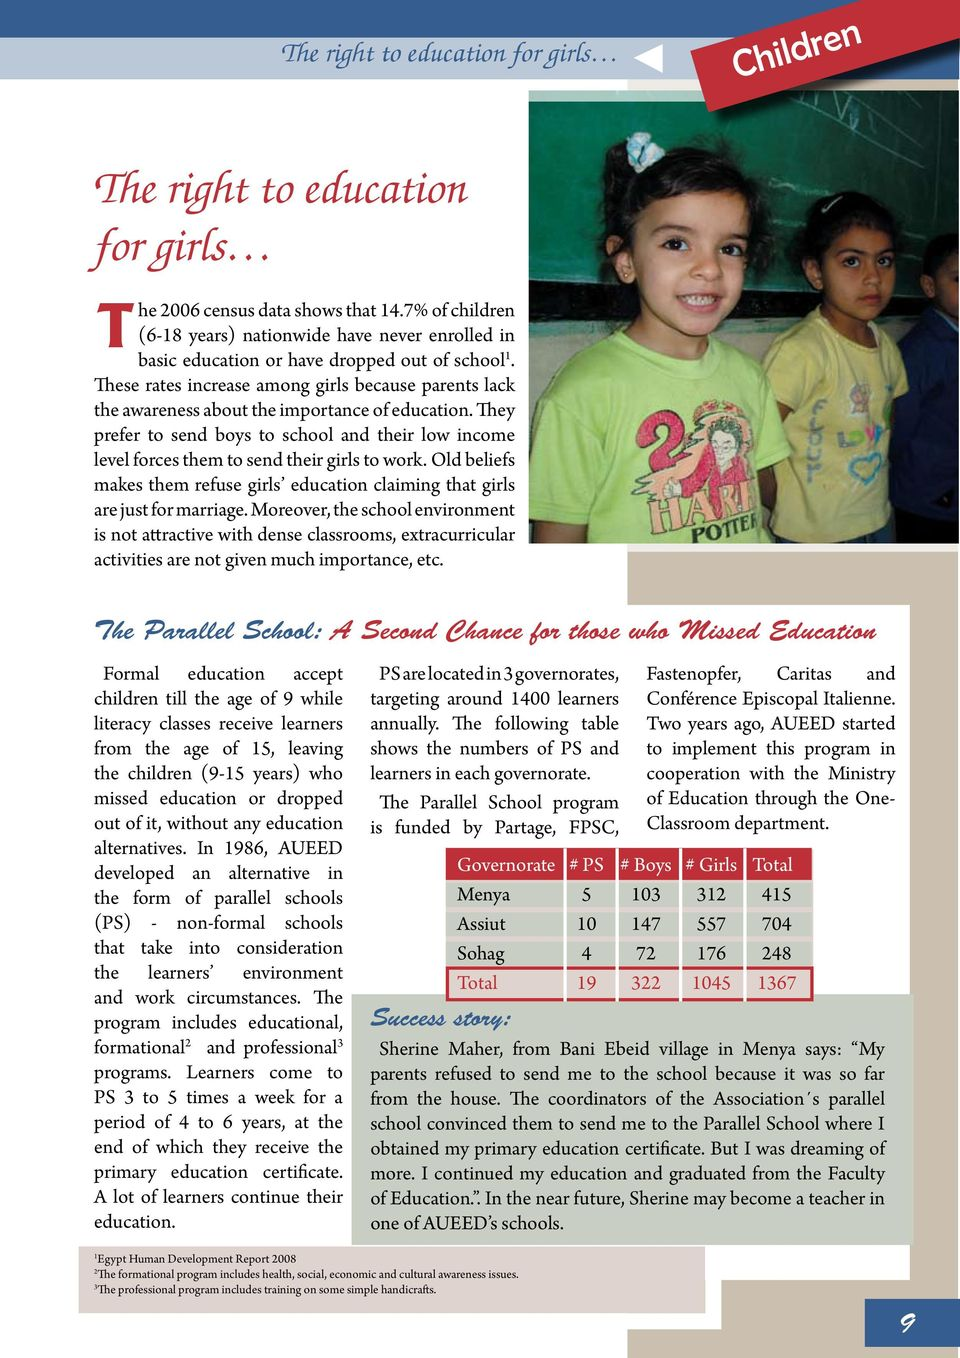 These rates increase among girls because parents lack the awareness about the importance of education.